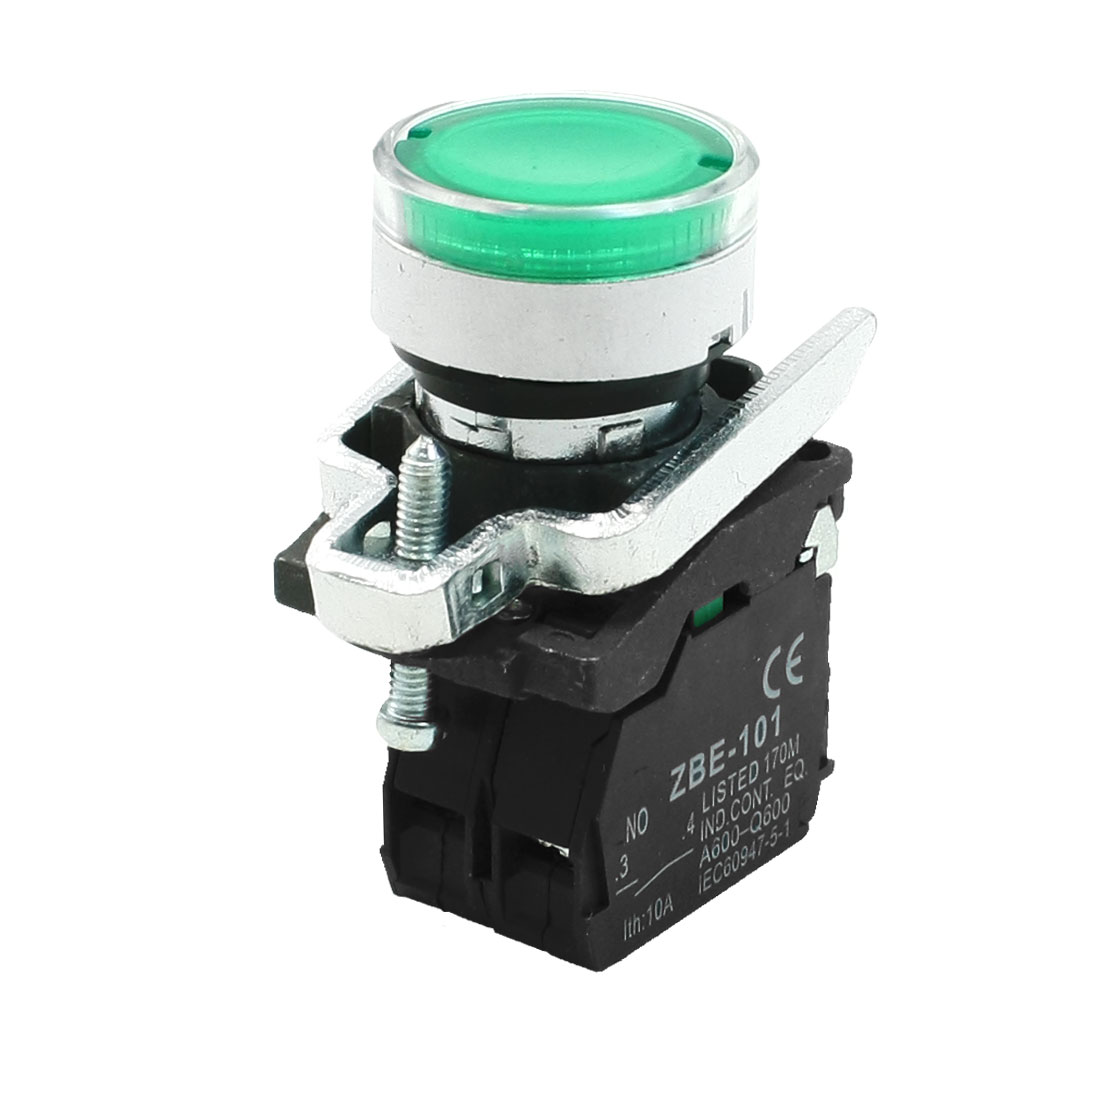 Green Flat Push Button Momentary Switch Ith10A DPST ZBE-101